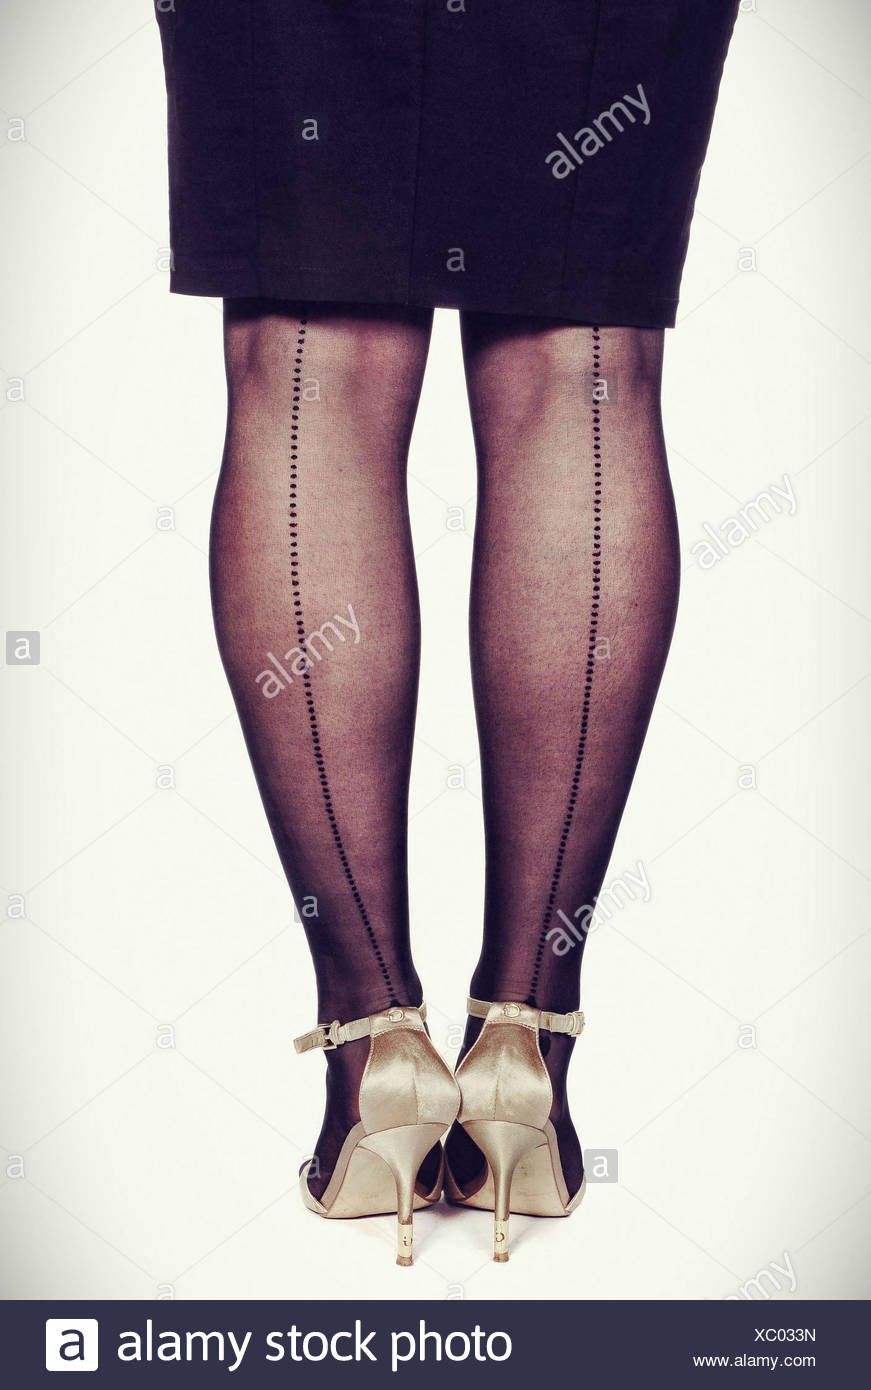 women's legs, skirt, black, nylon tights - Stock Image